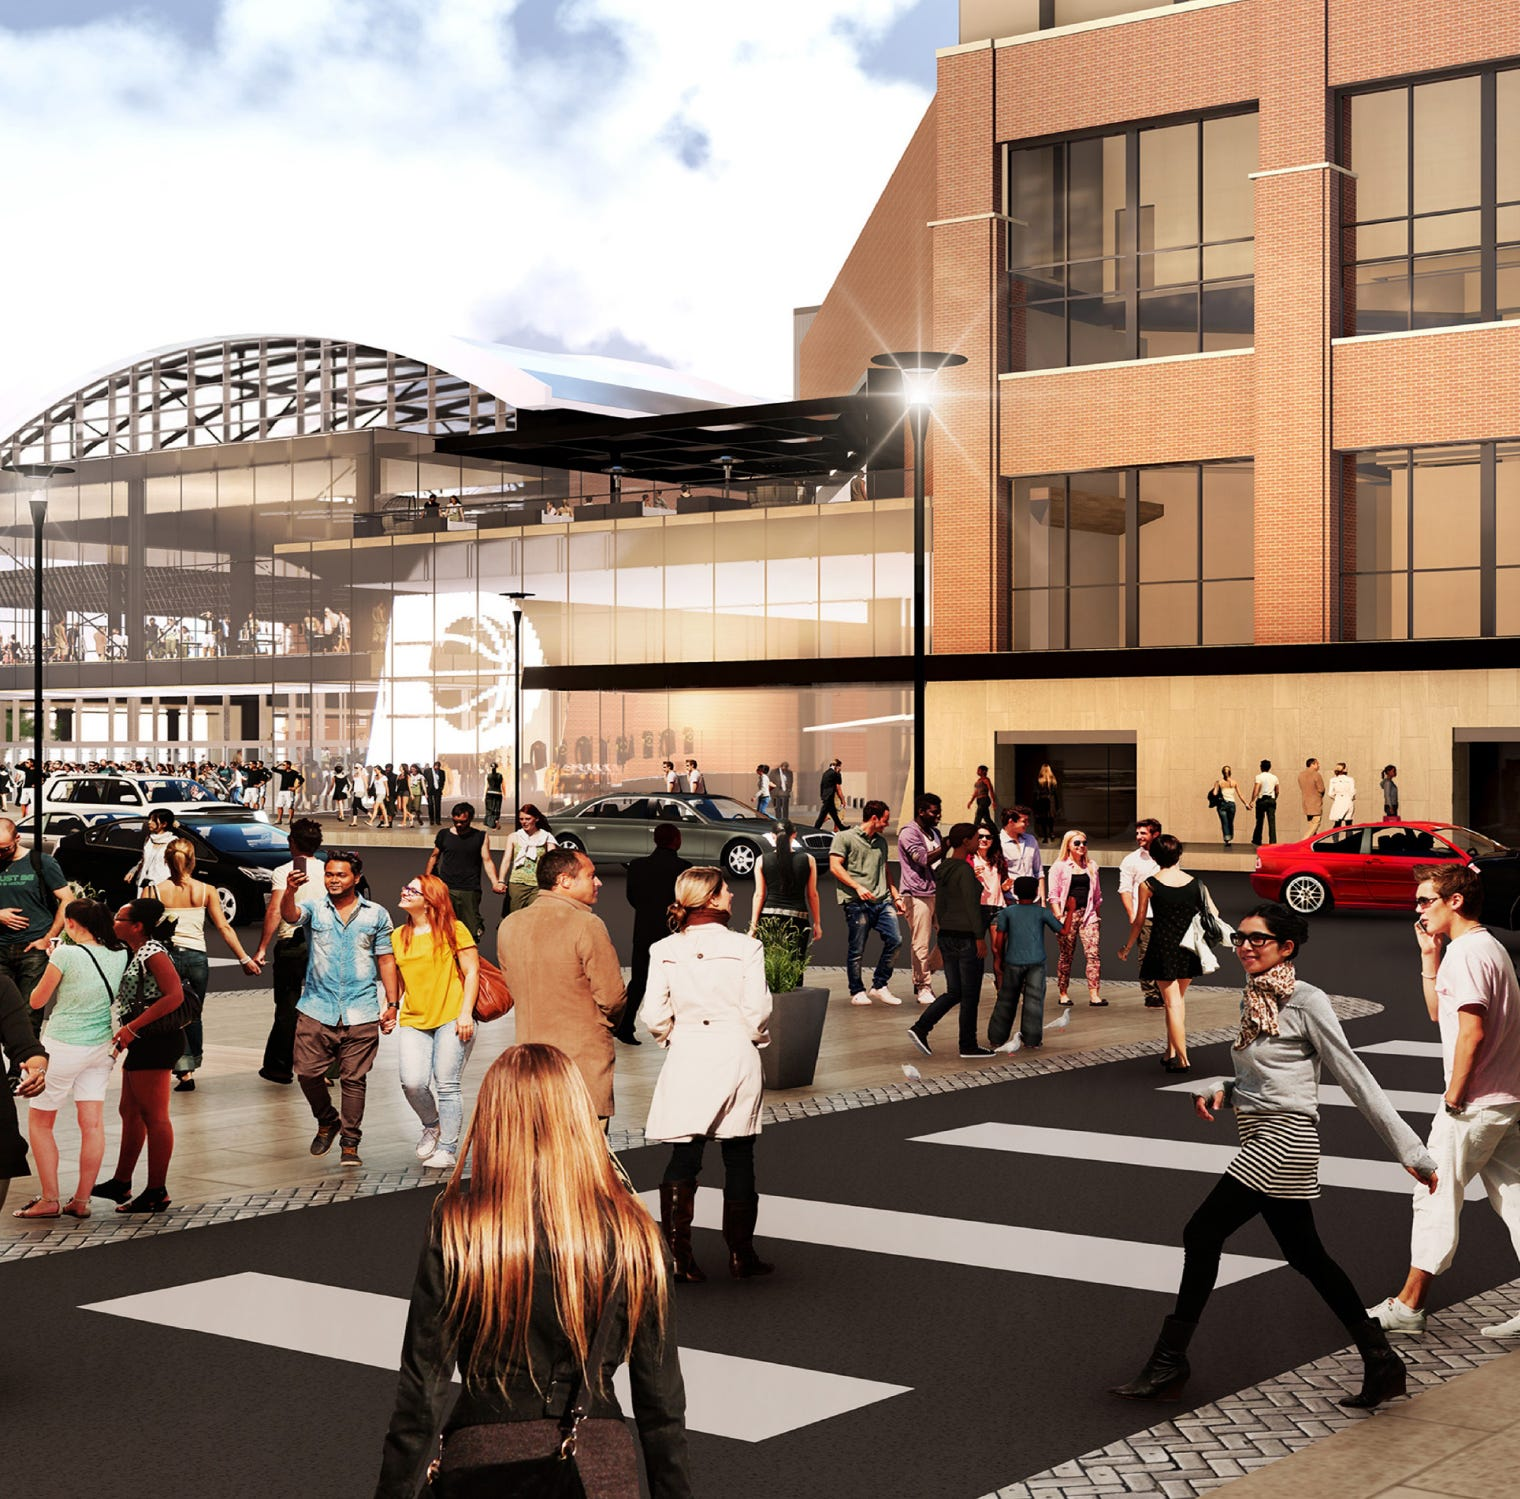 The Indiana Pacers and the city have agreed to a deal worth $800 million  to stay in Indianapolis for the next 25 years. The upgrades to Bankers Life Fieldhouse, which will be fast-tracked over the next three years, will include a public plaza to host year-round events near the Pennsylvania Street entrance. The area can be available for concerts, ice skating and even basketball games.